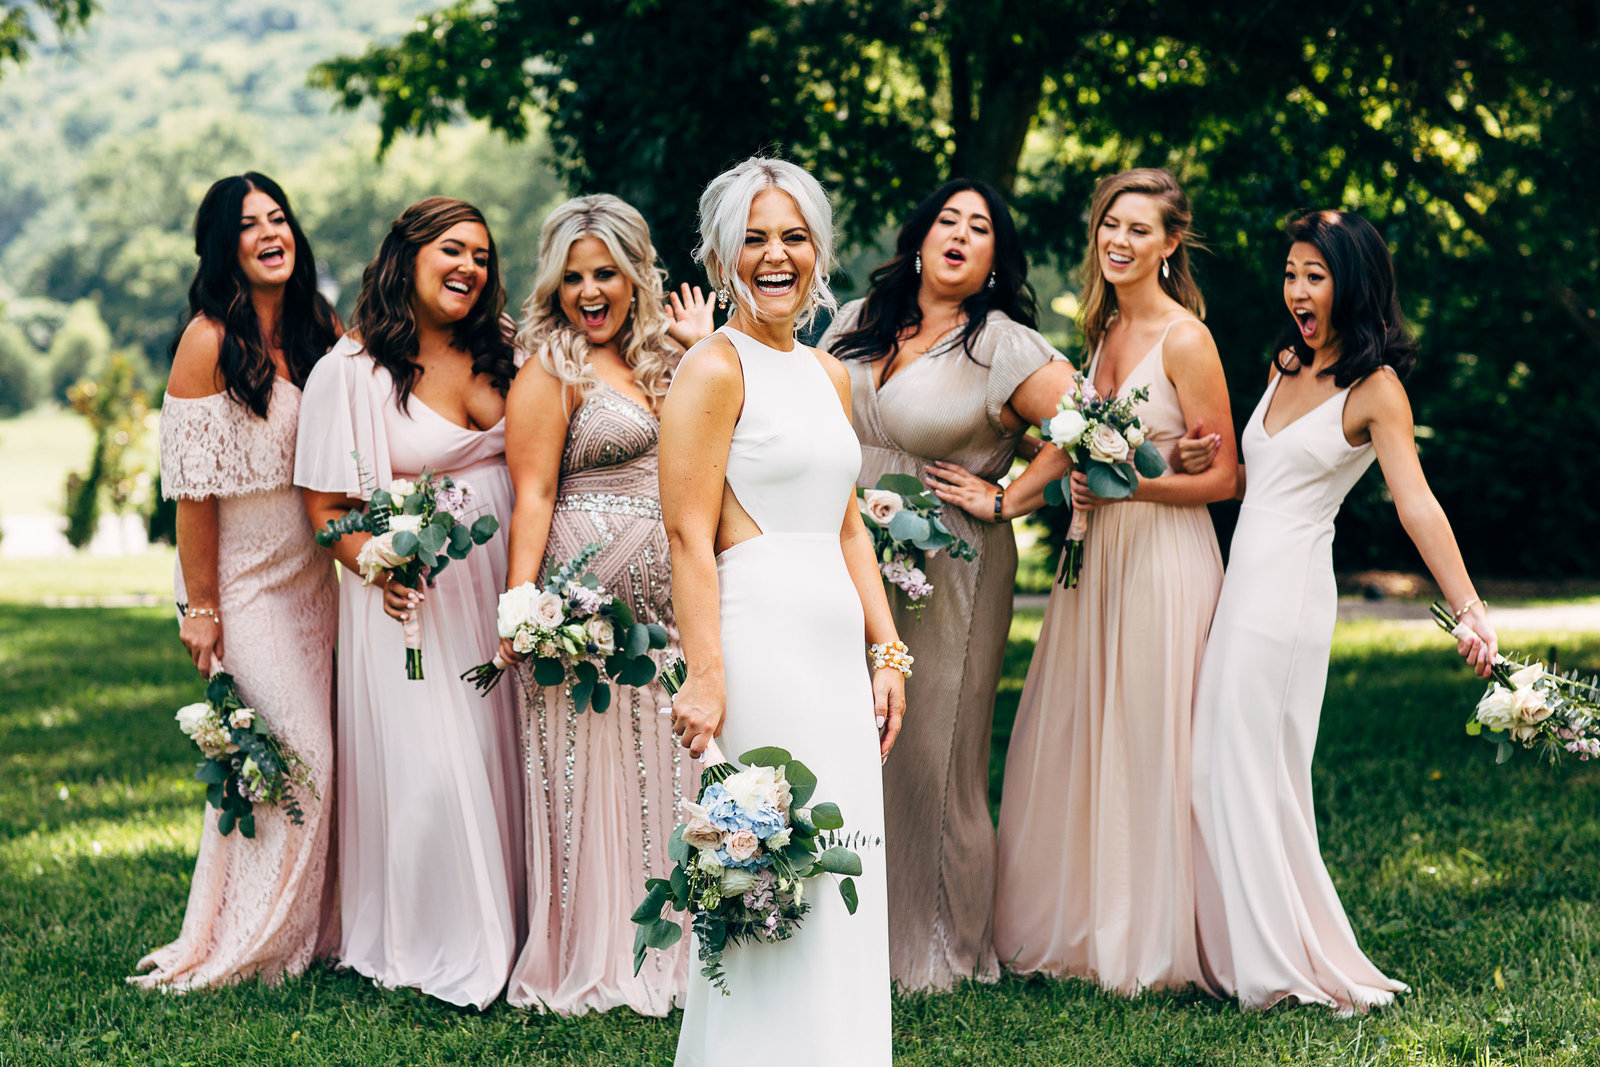 SaraLane-And-Stevie-Wedding-Photography-Ravenswood-Mansion-Brentwood-TN-Badeaux-Final-LR-208-small